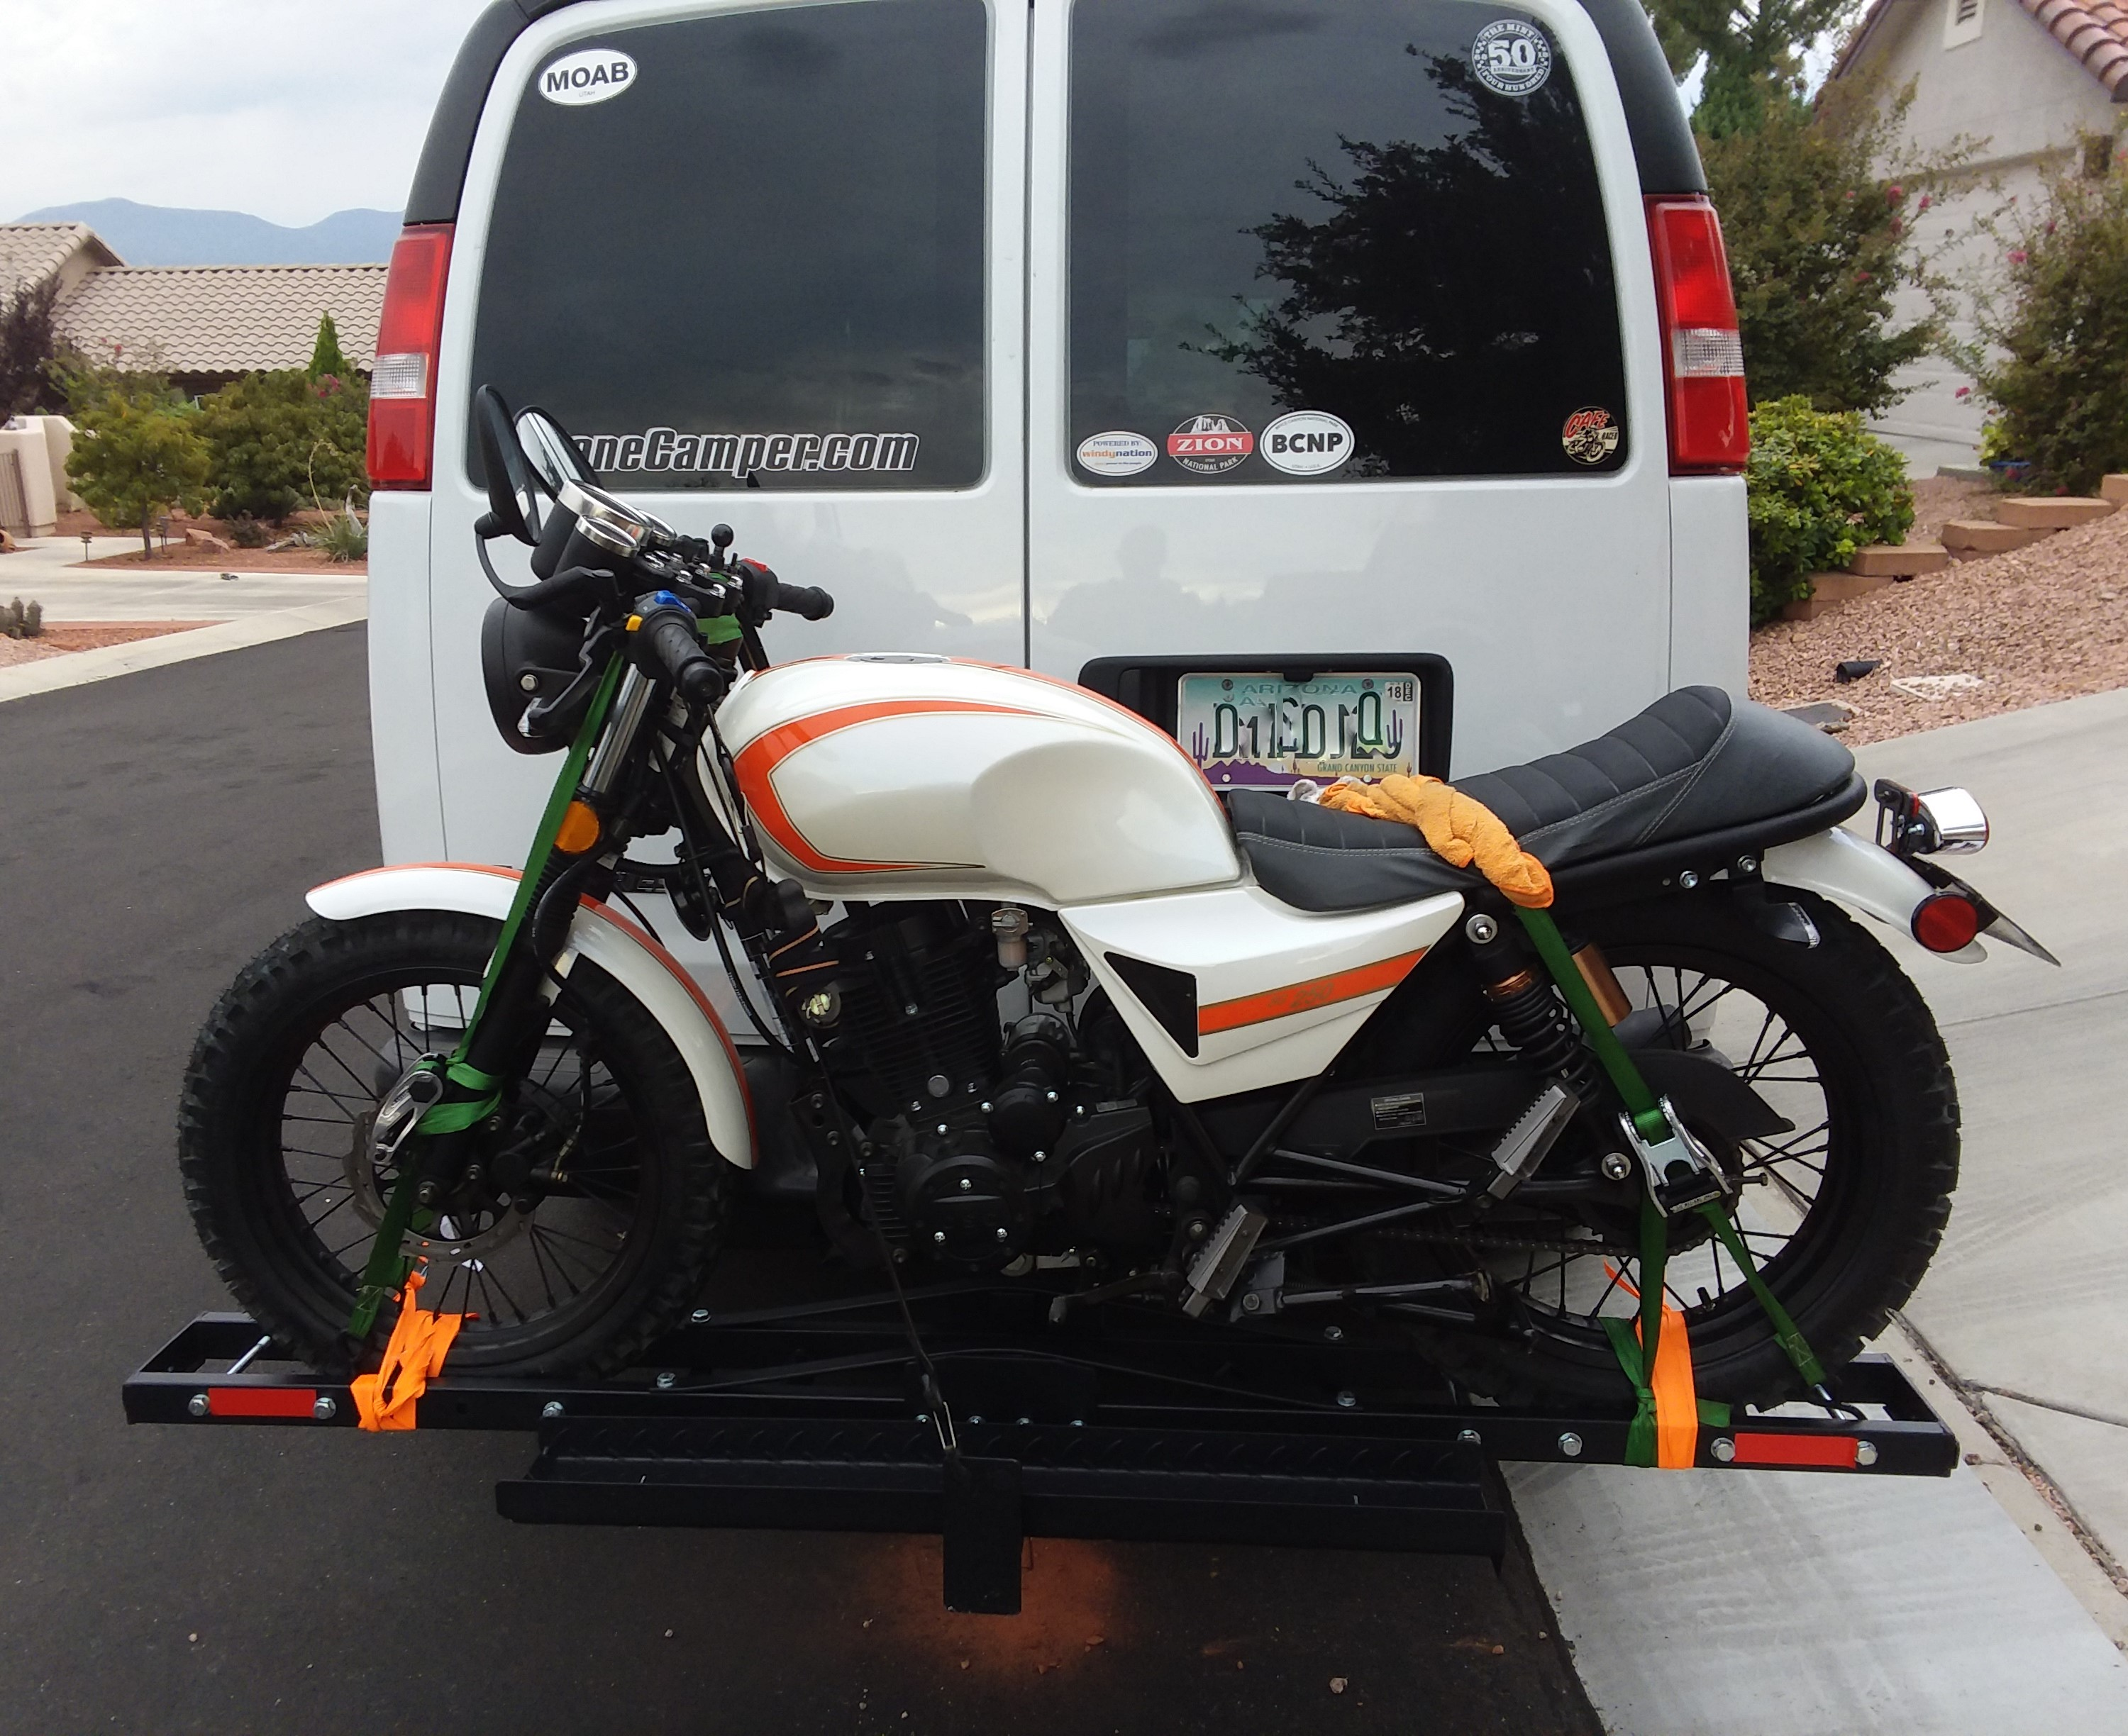 Csc Blog The Voice Of Csc Motorcycles